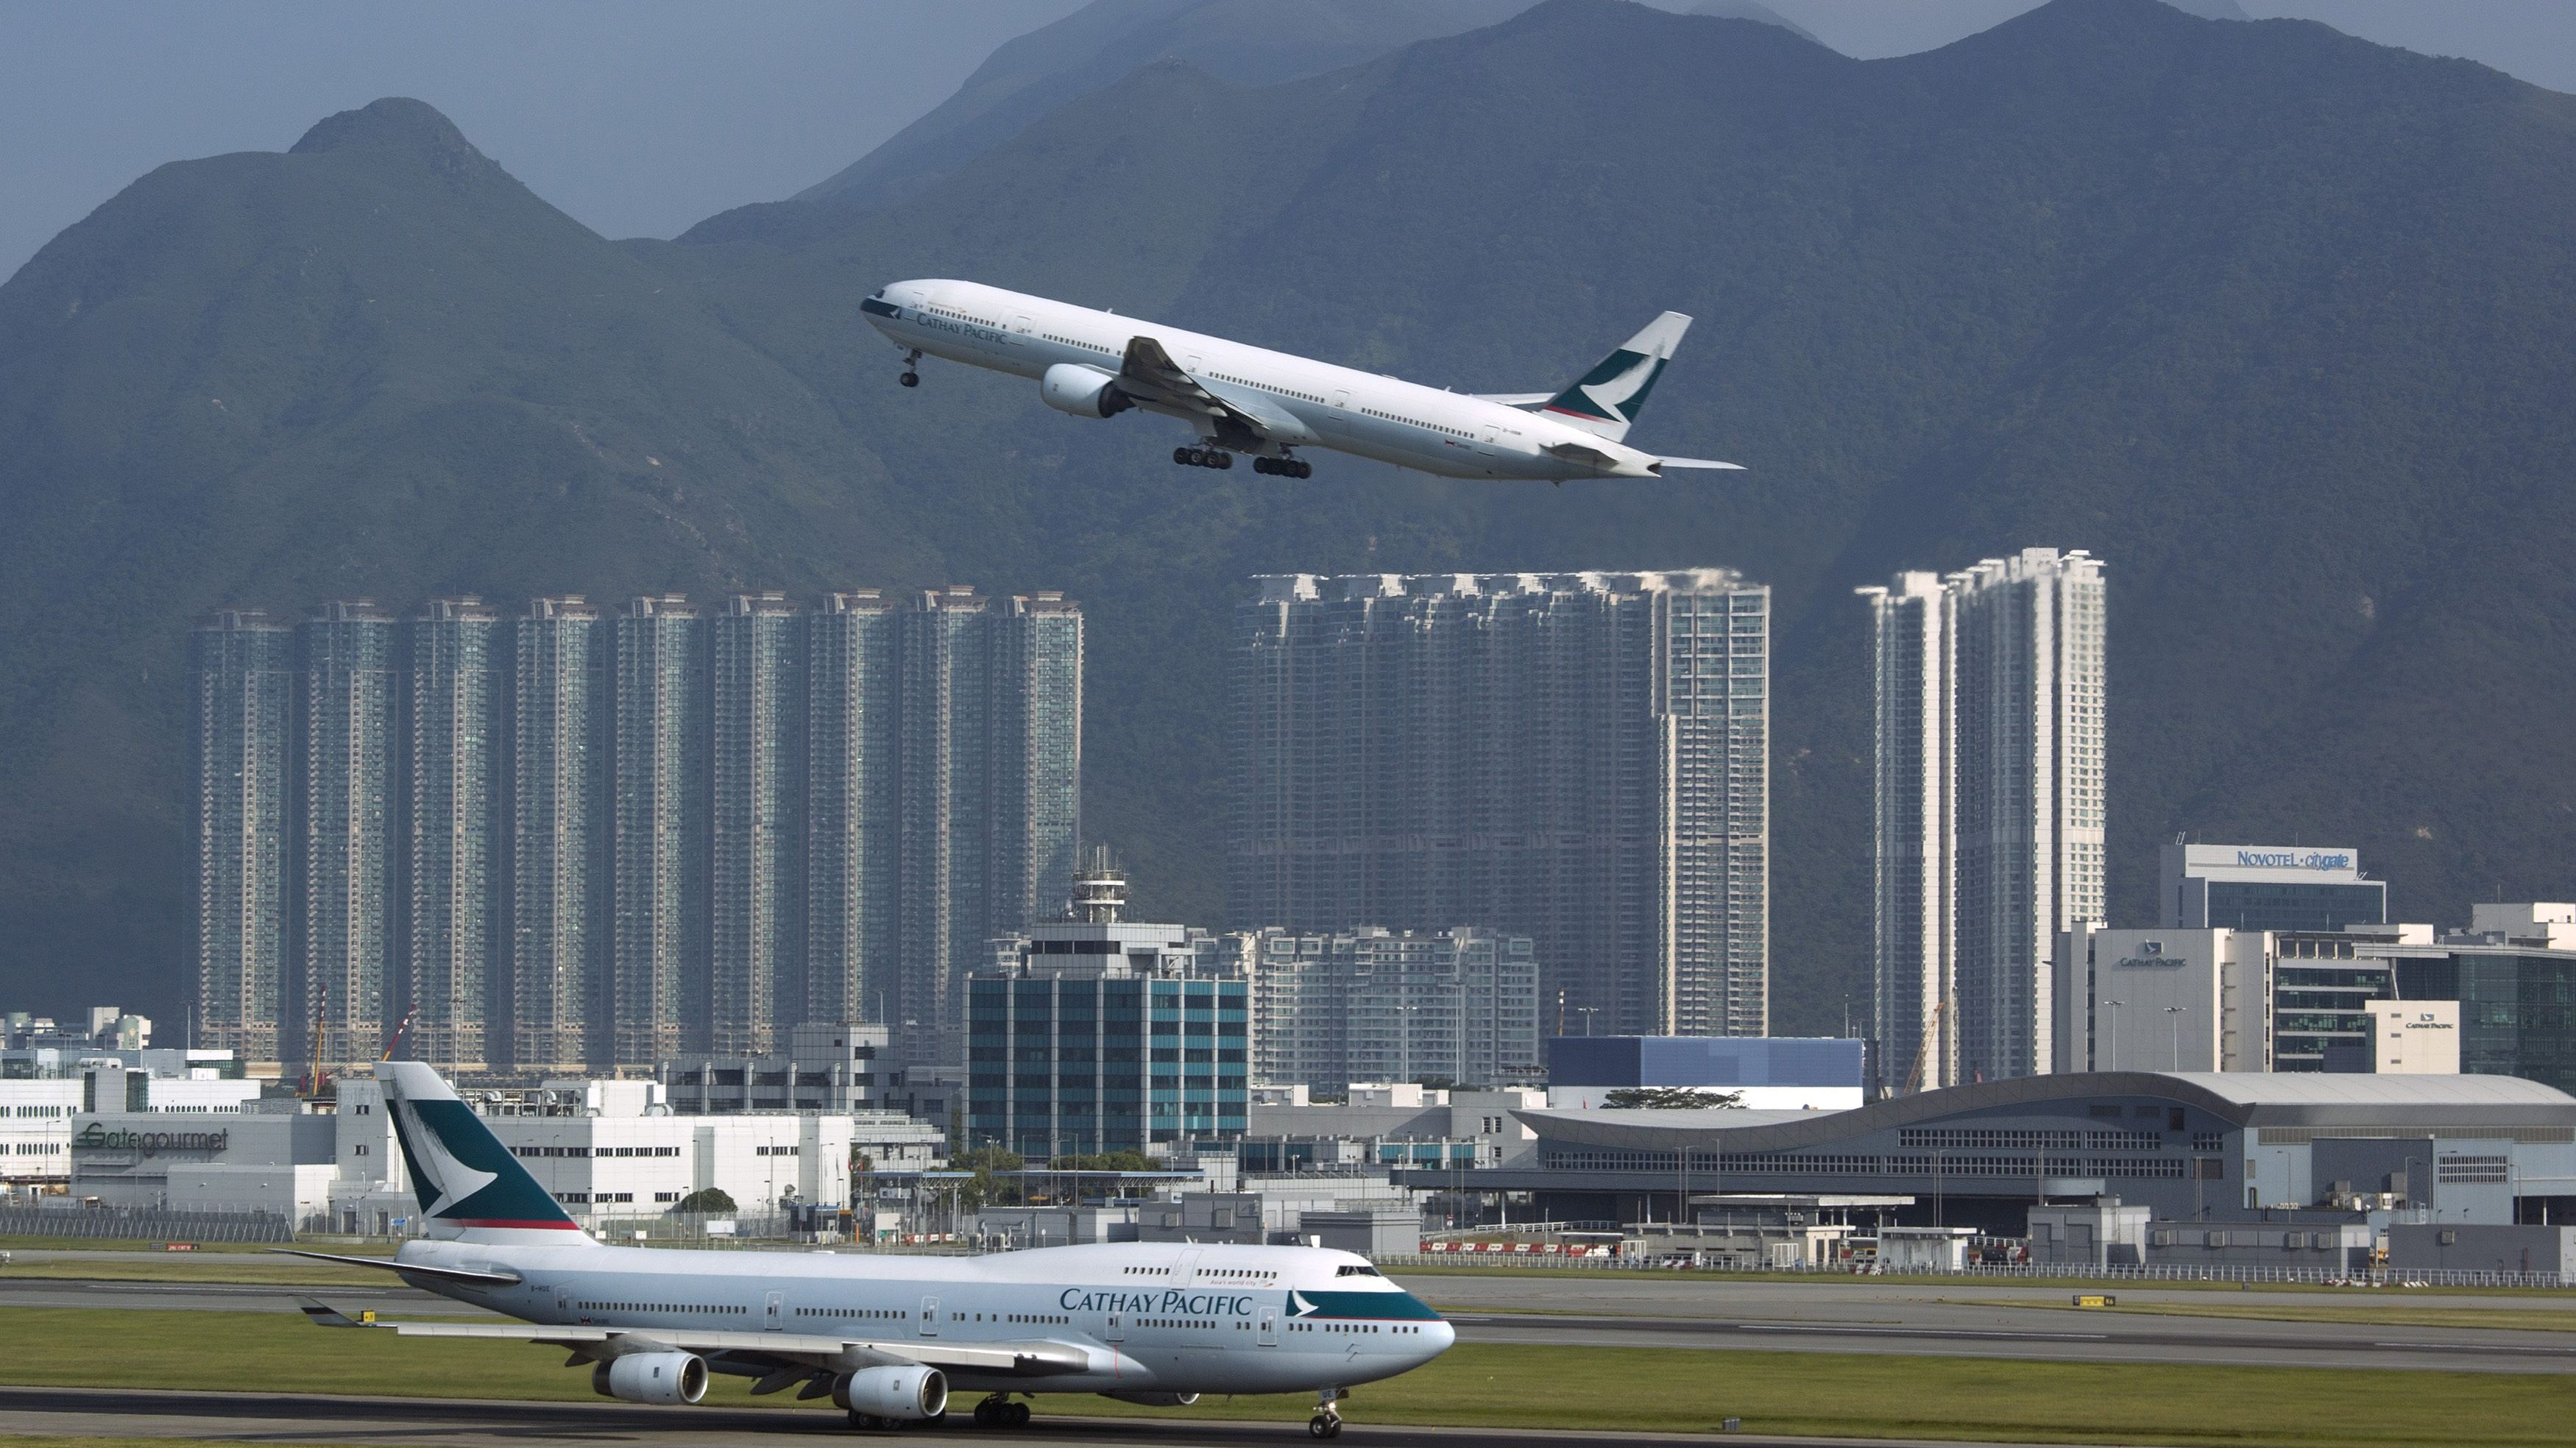 A Cathay Pacific Airways passenger plane takes off at the Hong Kong Airport